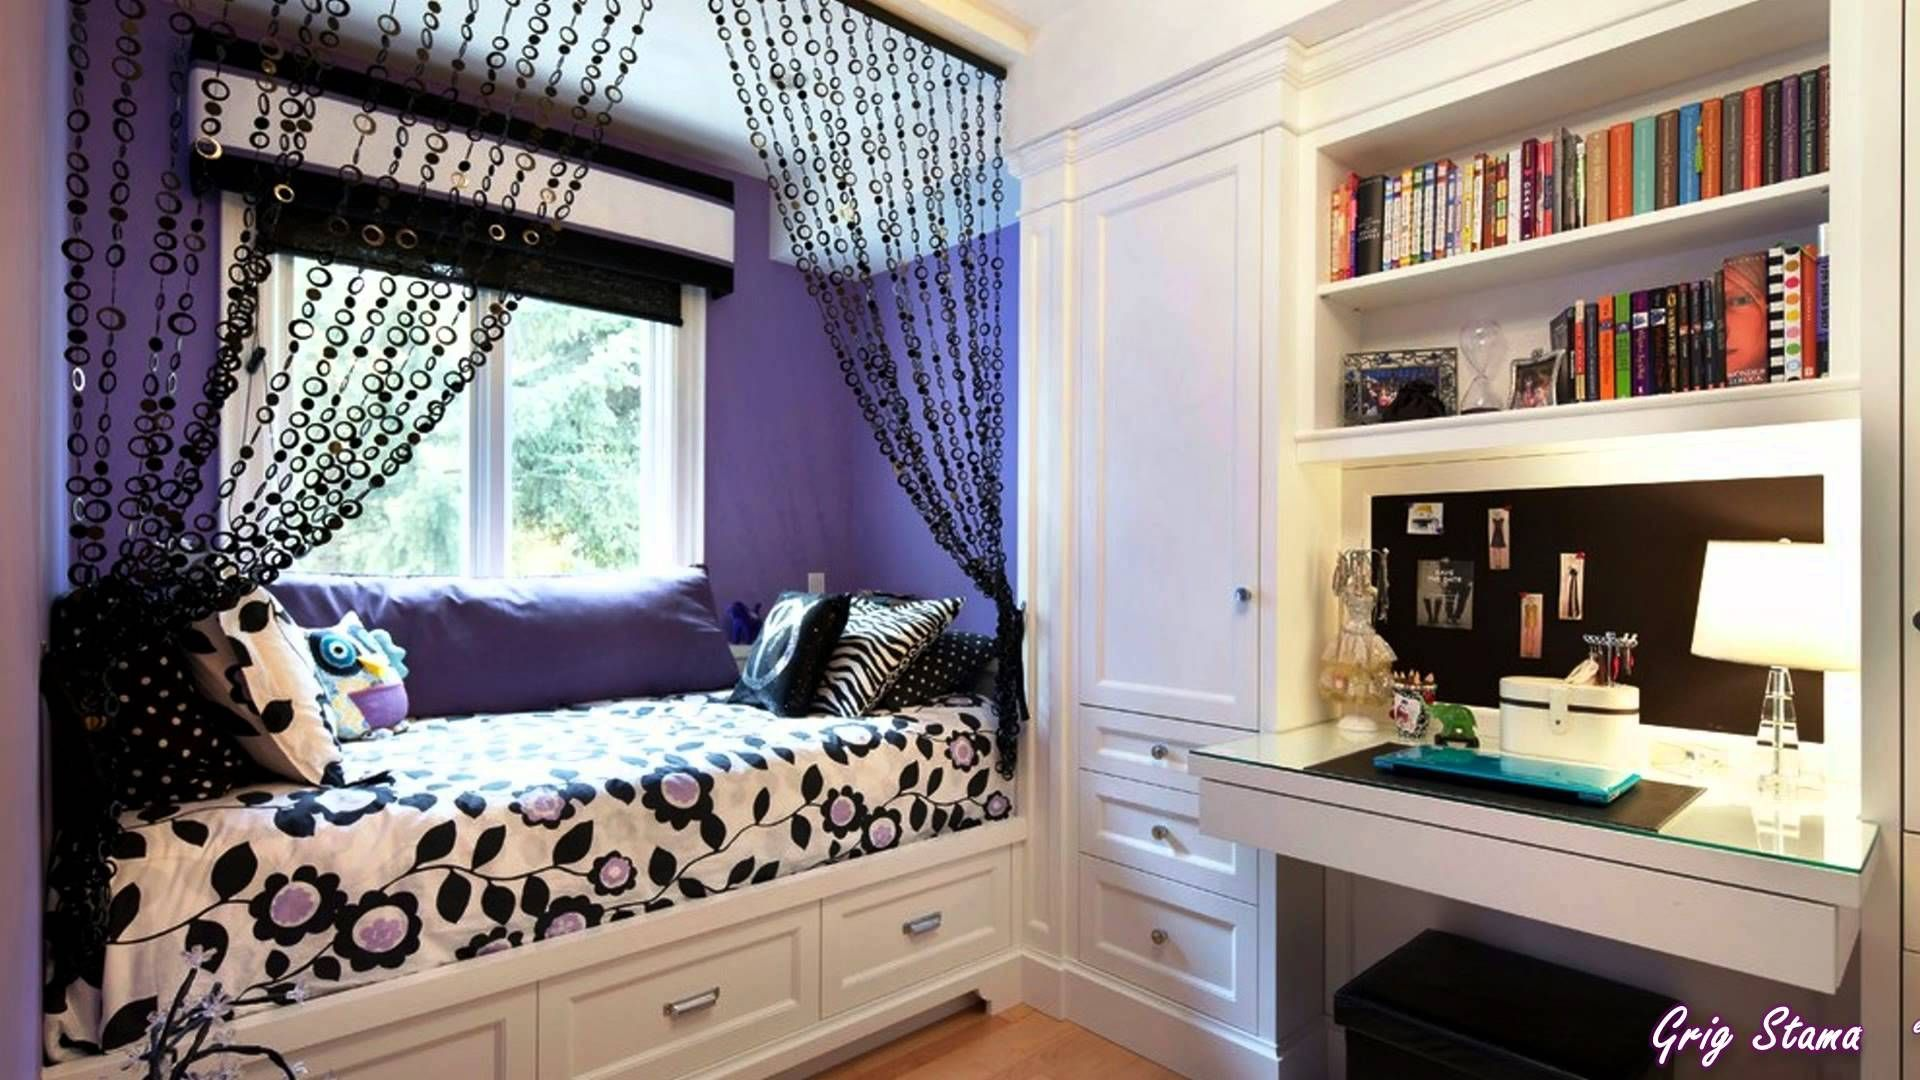 Simple bedroom design for teenagers - Bedroom Ideas For Teenage Girls Tumblr Simple Cosmoplast Biz